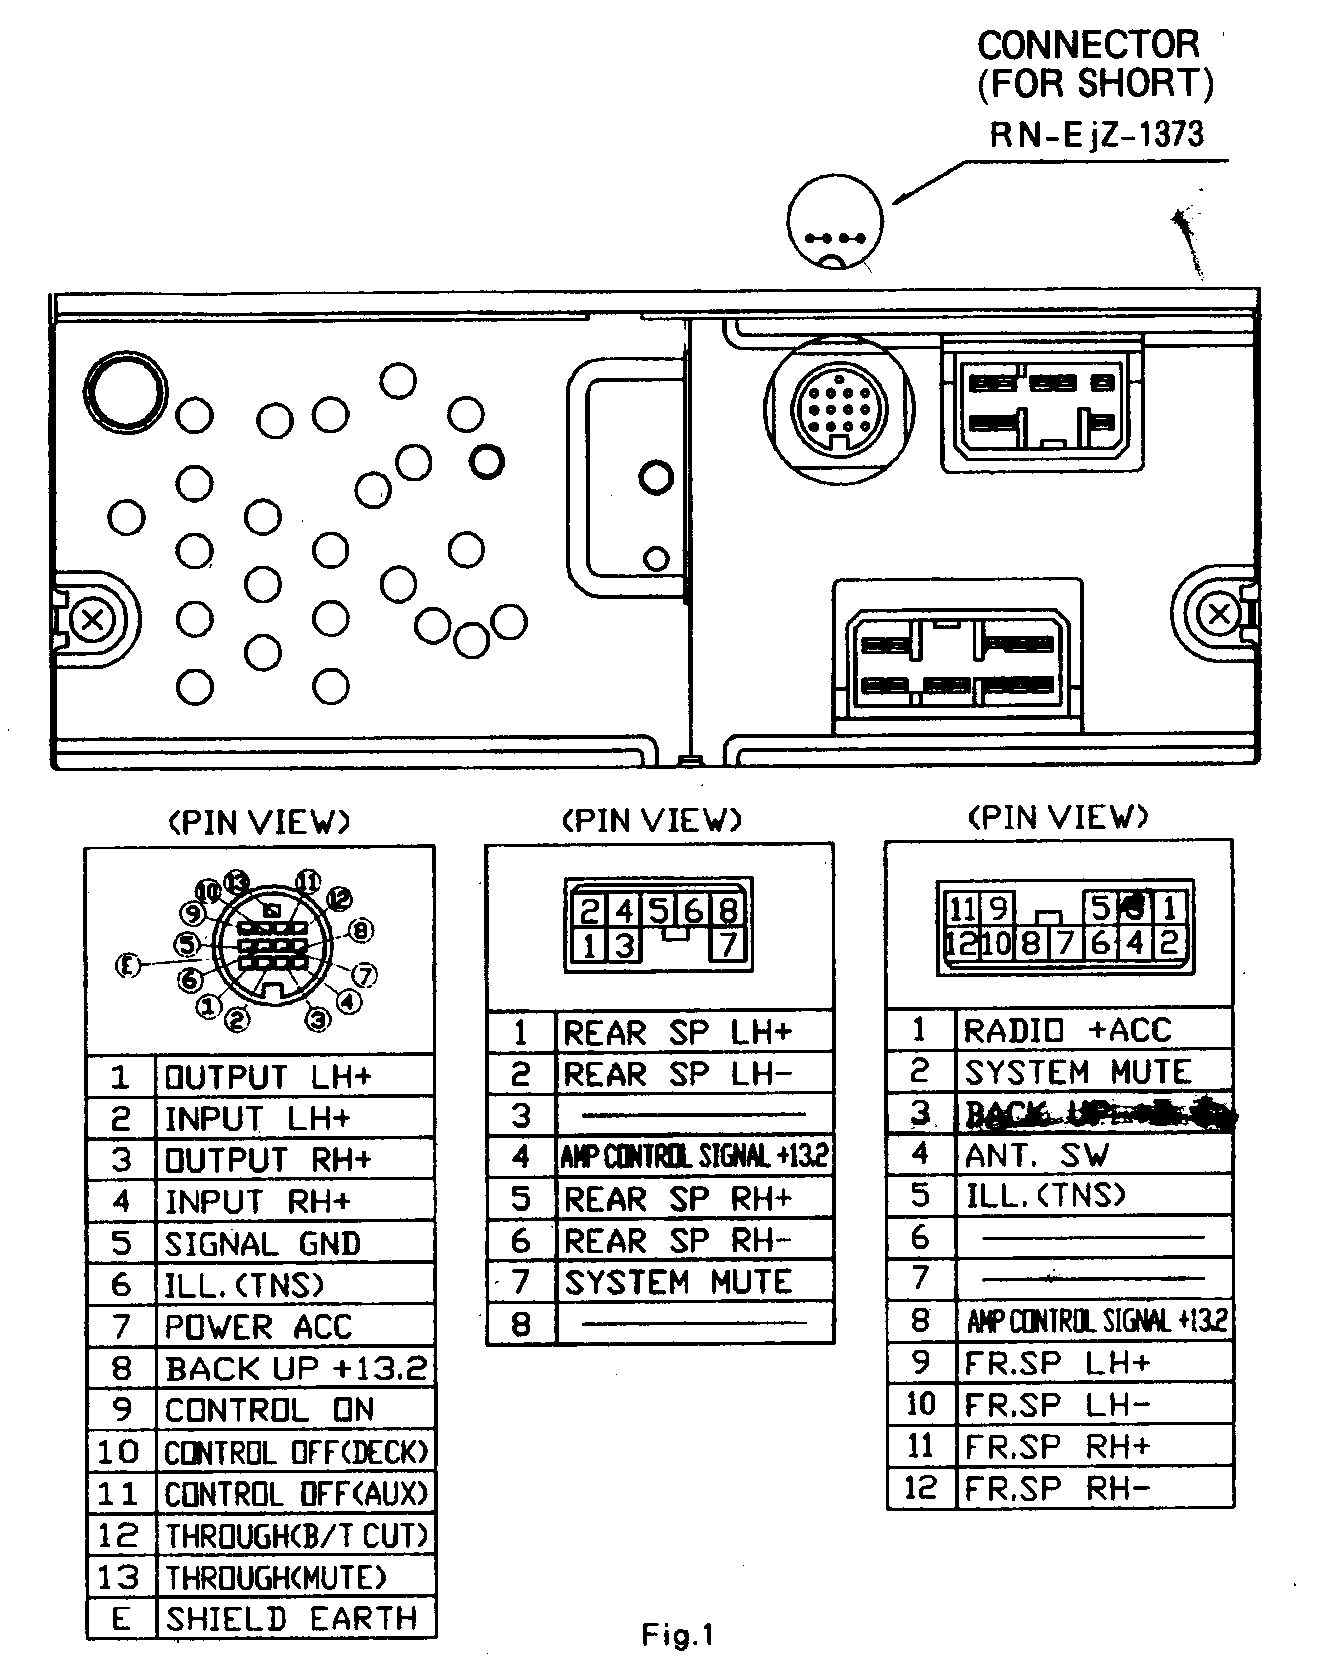 Diagram view also Pontiac Grand Am 2001 2004 Fuse Box Diagram together with 4mkj1 Chevy Blazer S10 96 Chevy Blazer Want Troubleshoot besides 3yqrk Does Vacuum Hose Heater Control Valve Connect together with Where Is Remote Reciever For Door Locks 2000 Yukon. on 1996 gmc yukon fuse box